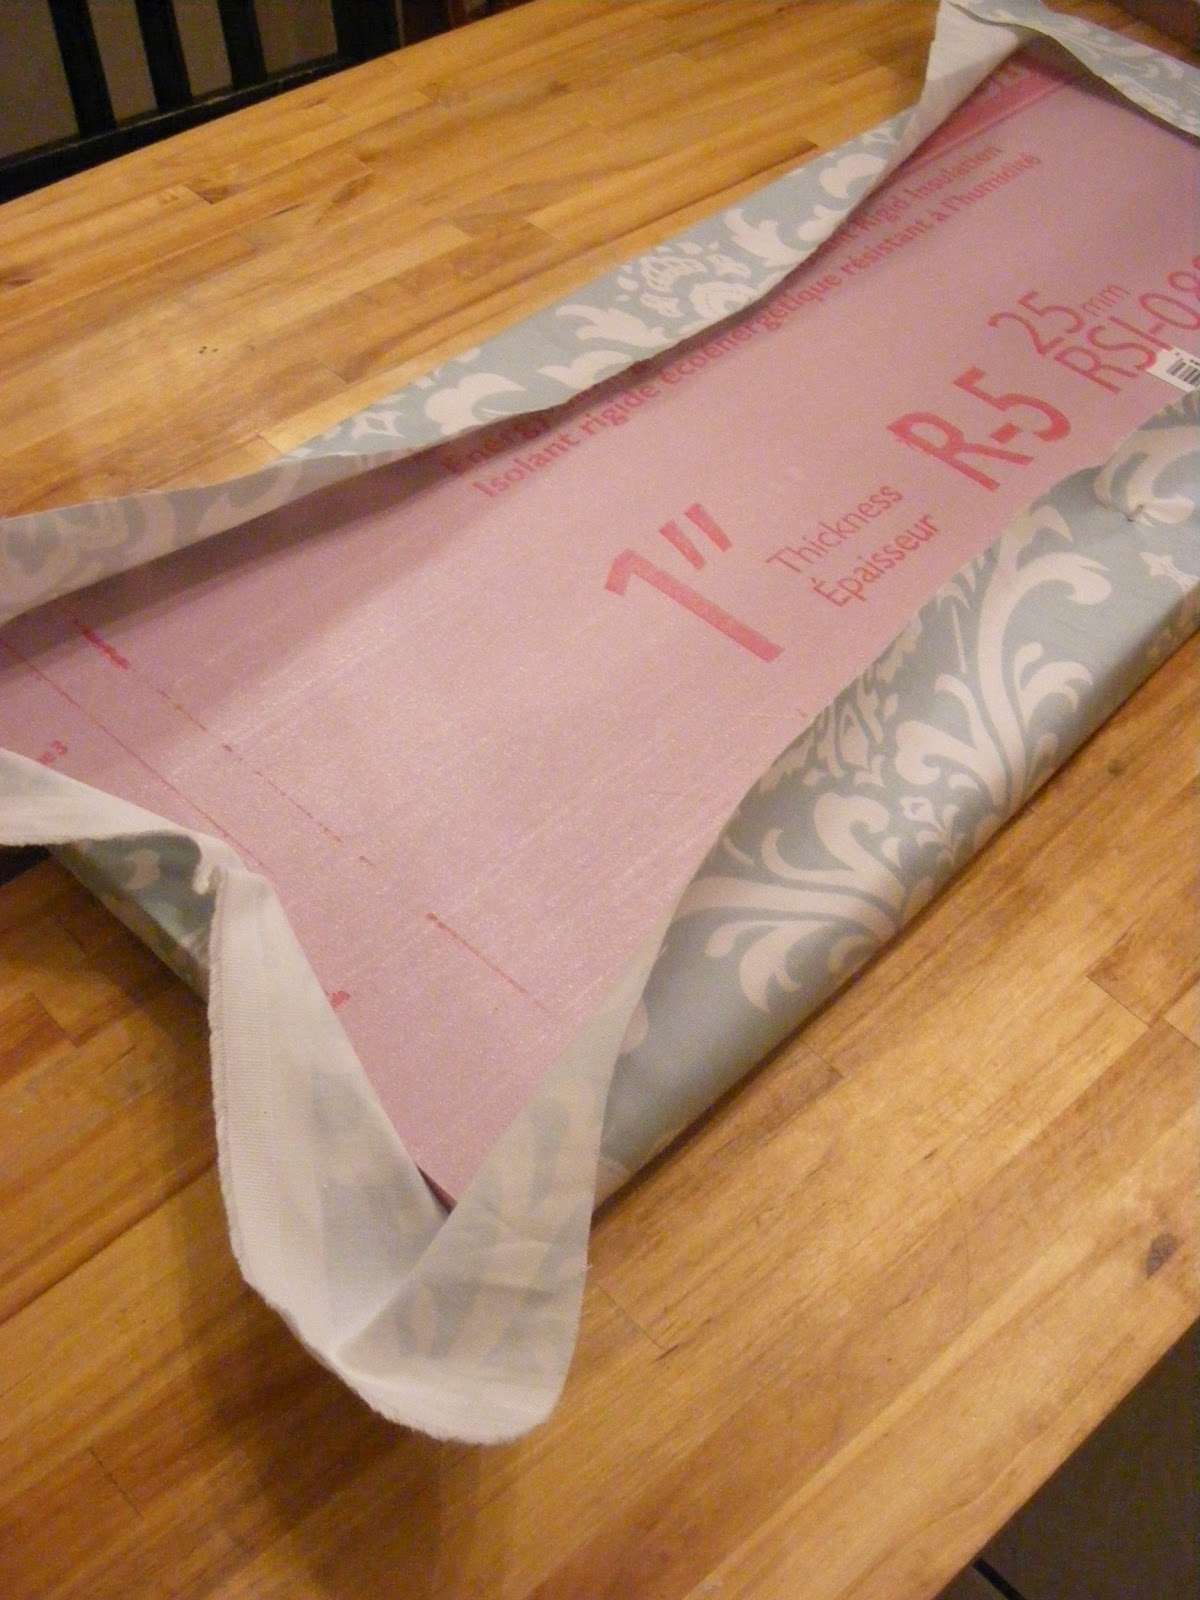 The Complete Guide To Imperfect Homemaking: Simple, Thrifty Diy Art Inside Newest Foam Fabric Wall Art (View 9 of 15)